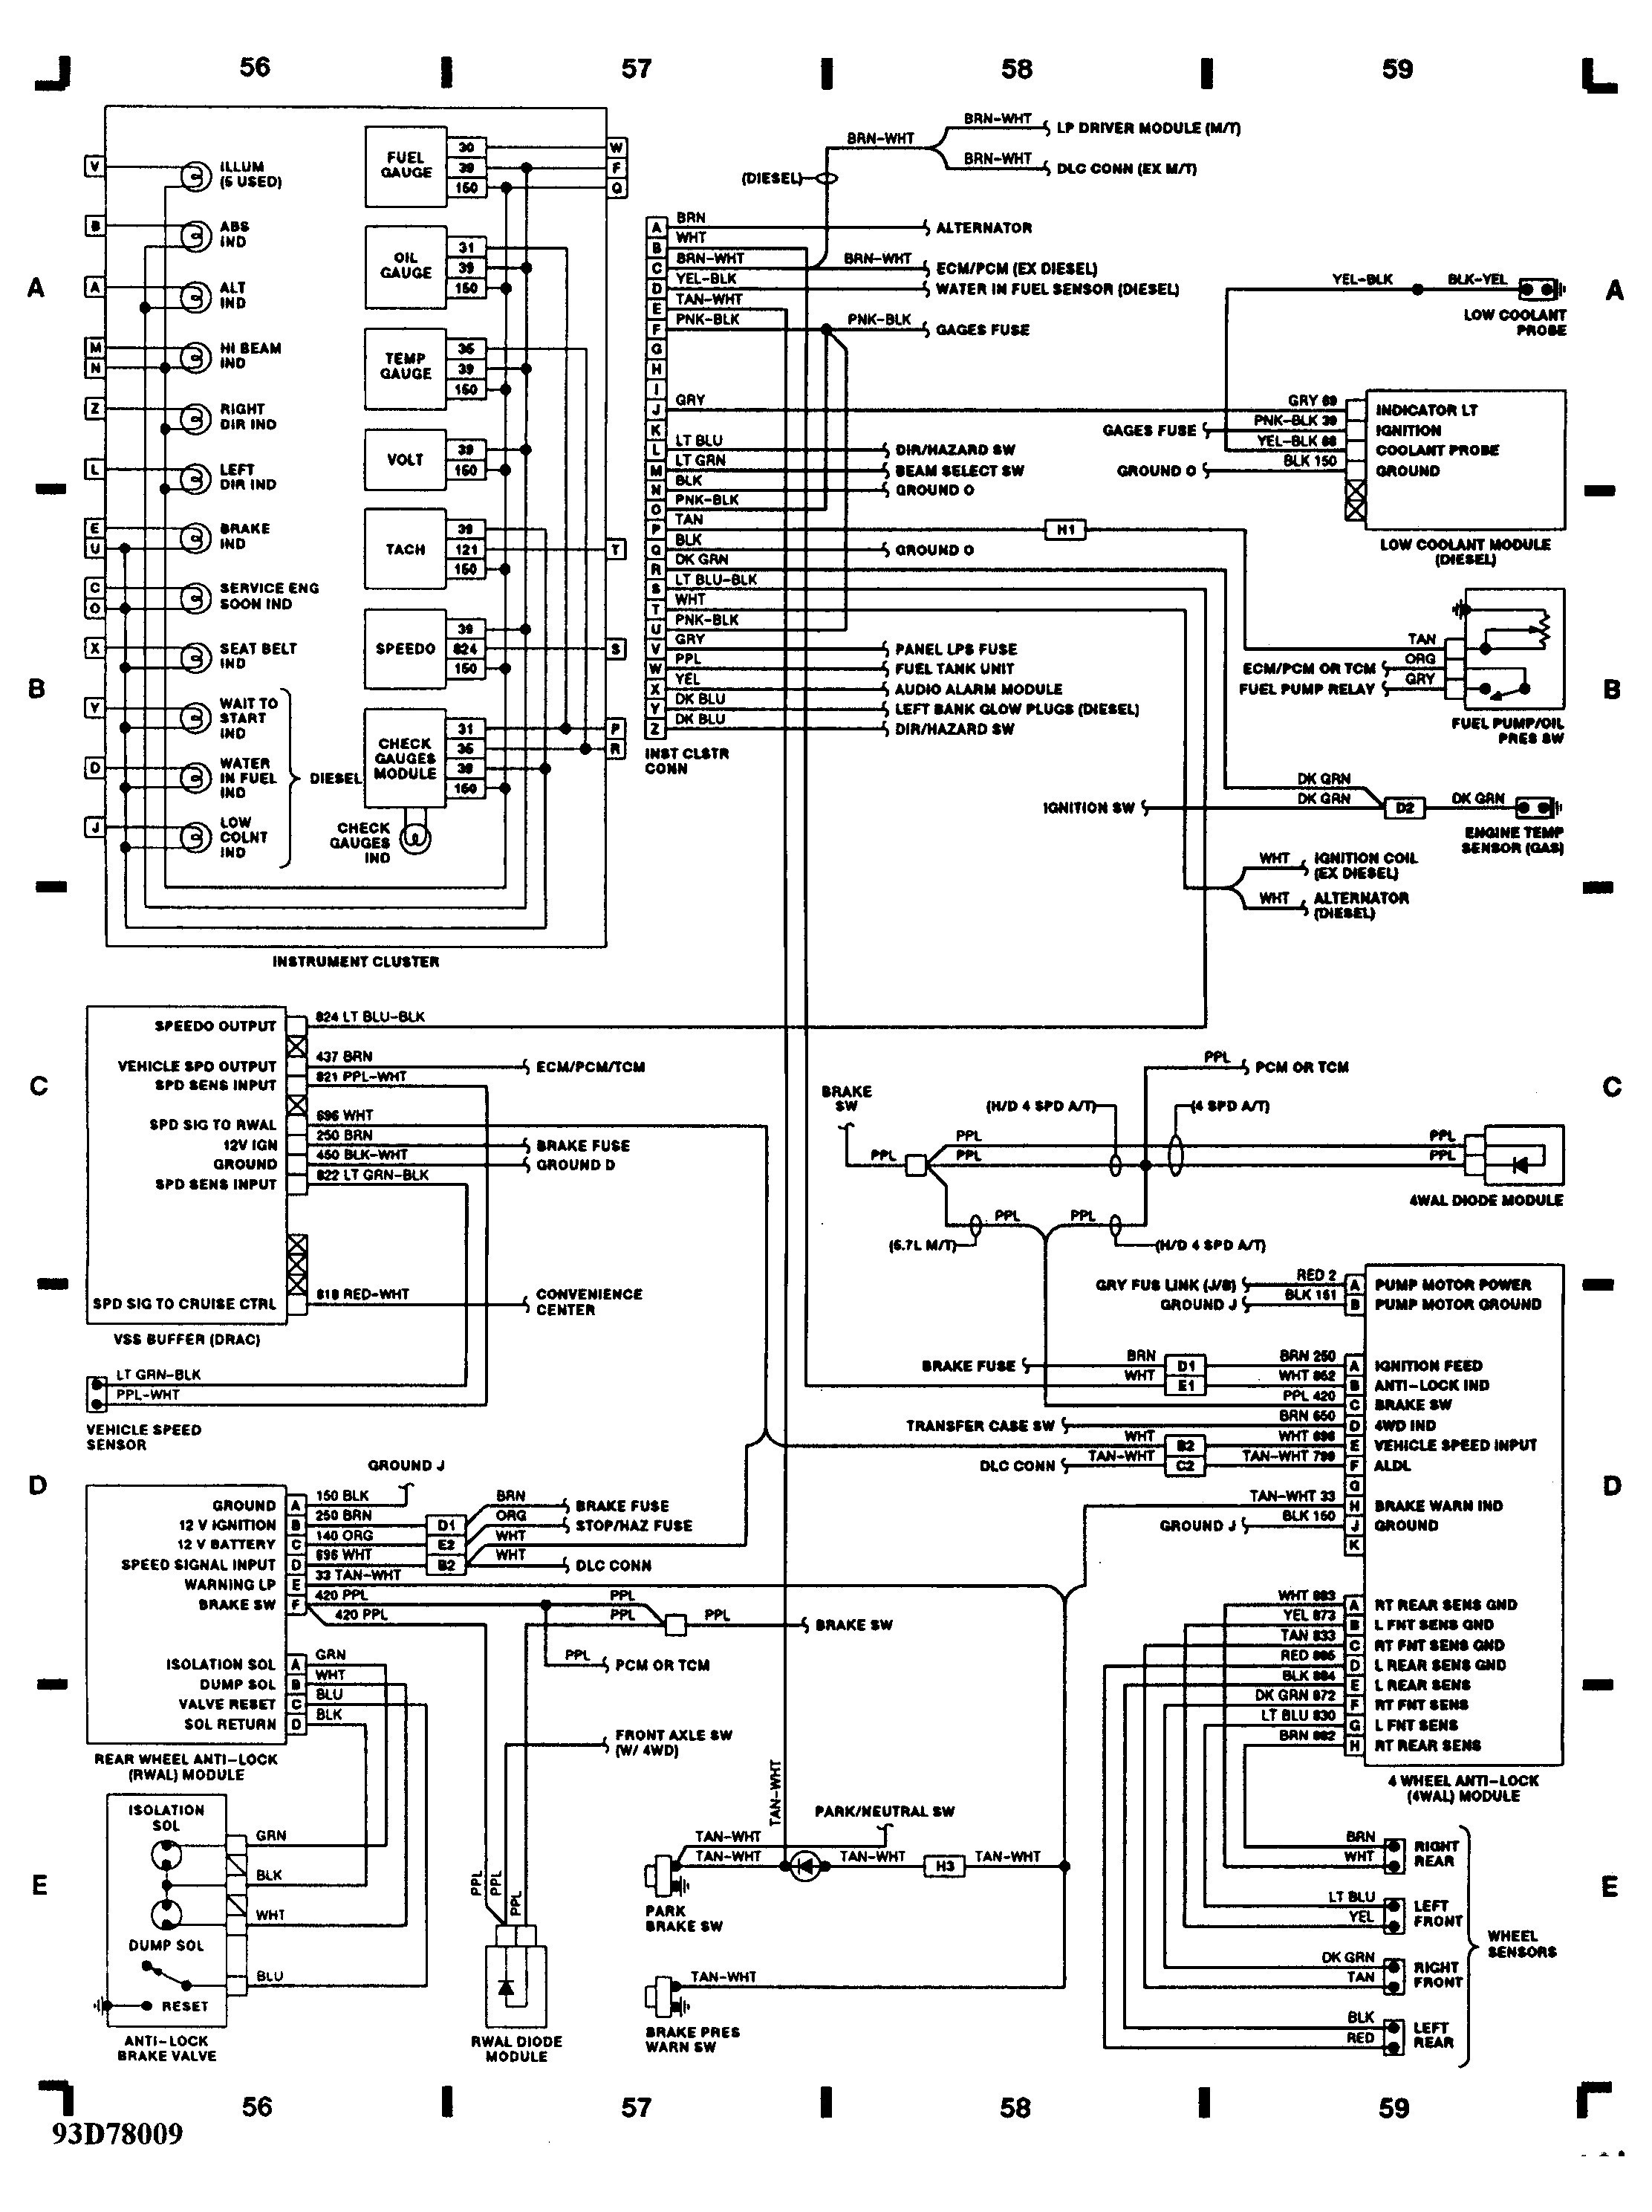 pontiac 3800 engine diagram 3 8 anything wiring diagrams u2022 rh  optionfire co 2000 Pontiac Montana